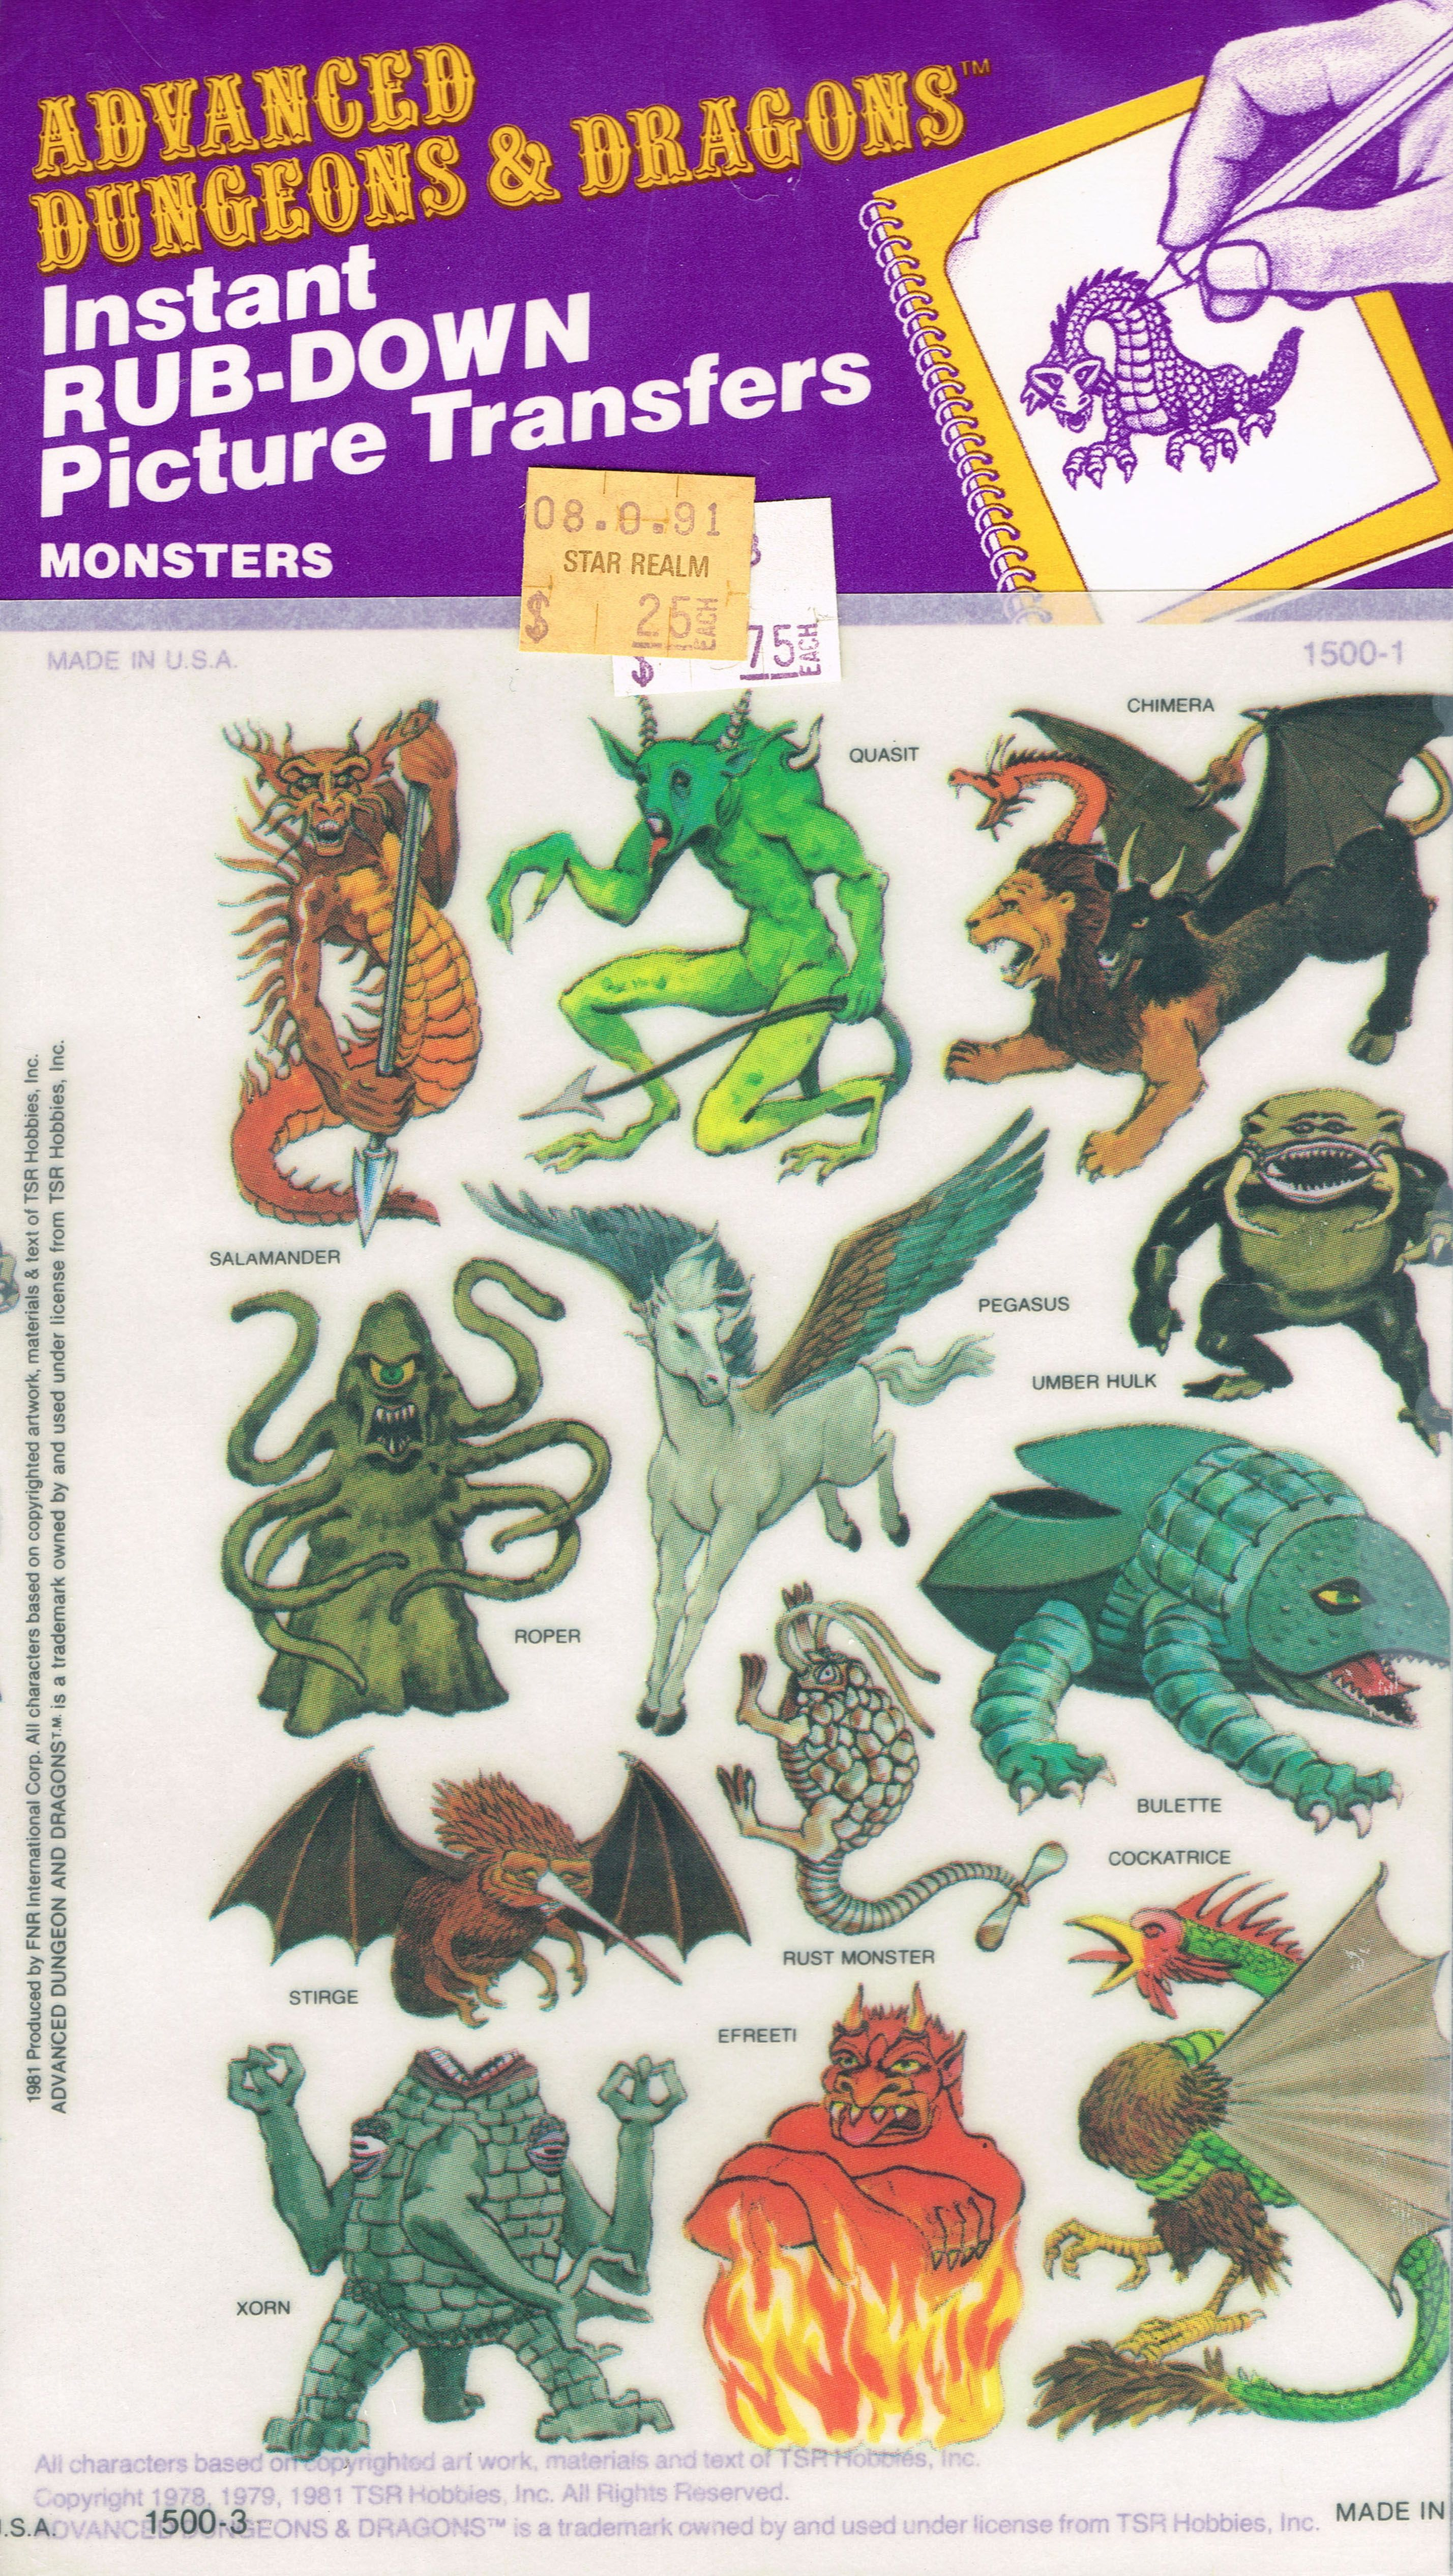 MONSTER BRAINS: Advanced Dungeons And Dragons Picture Transfers, 1981